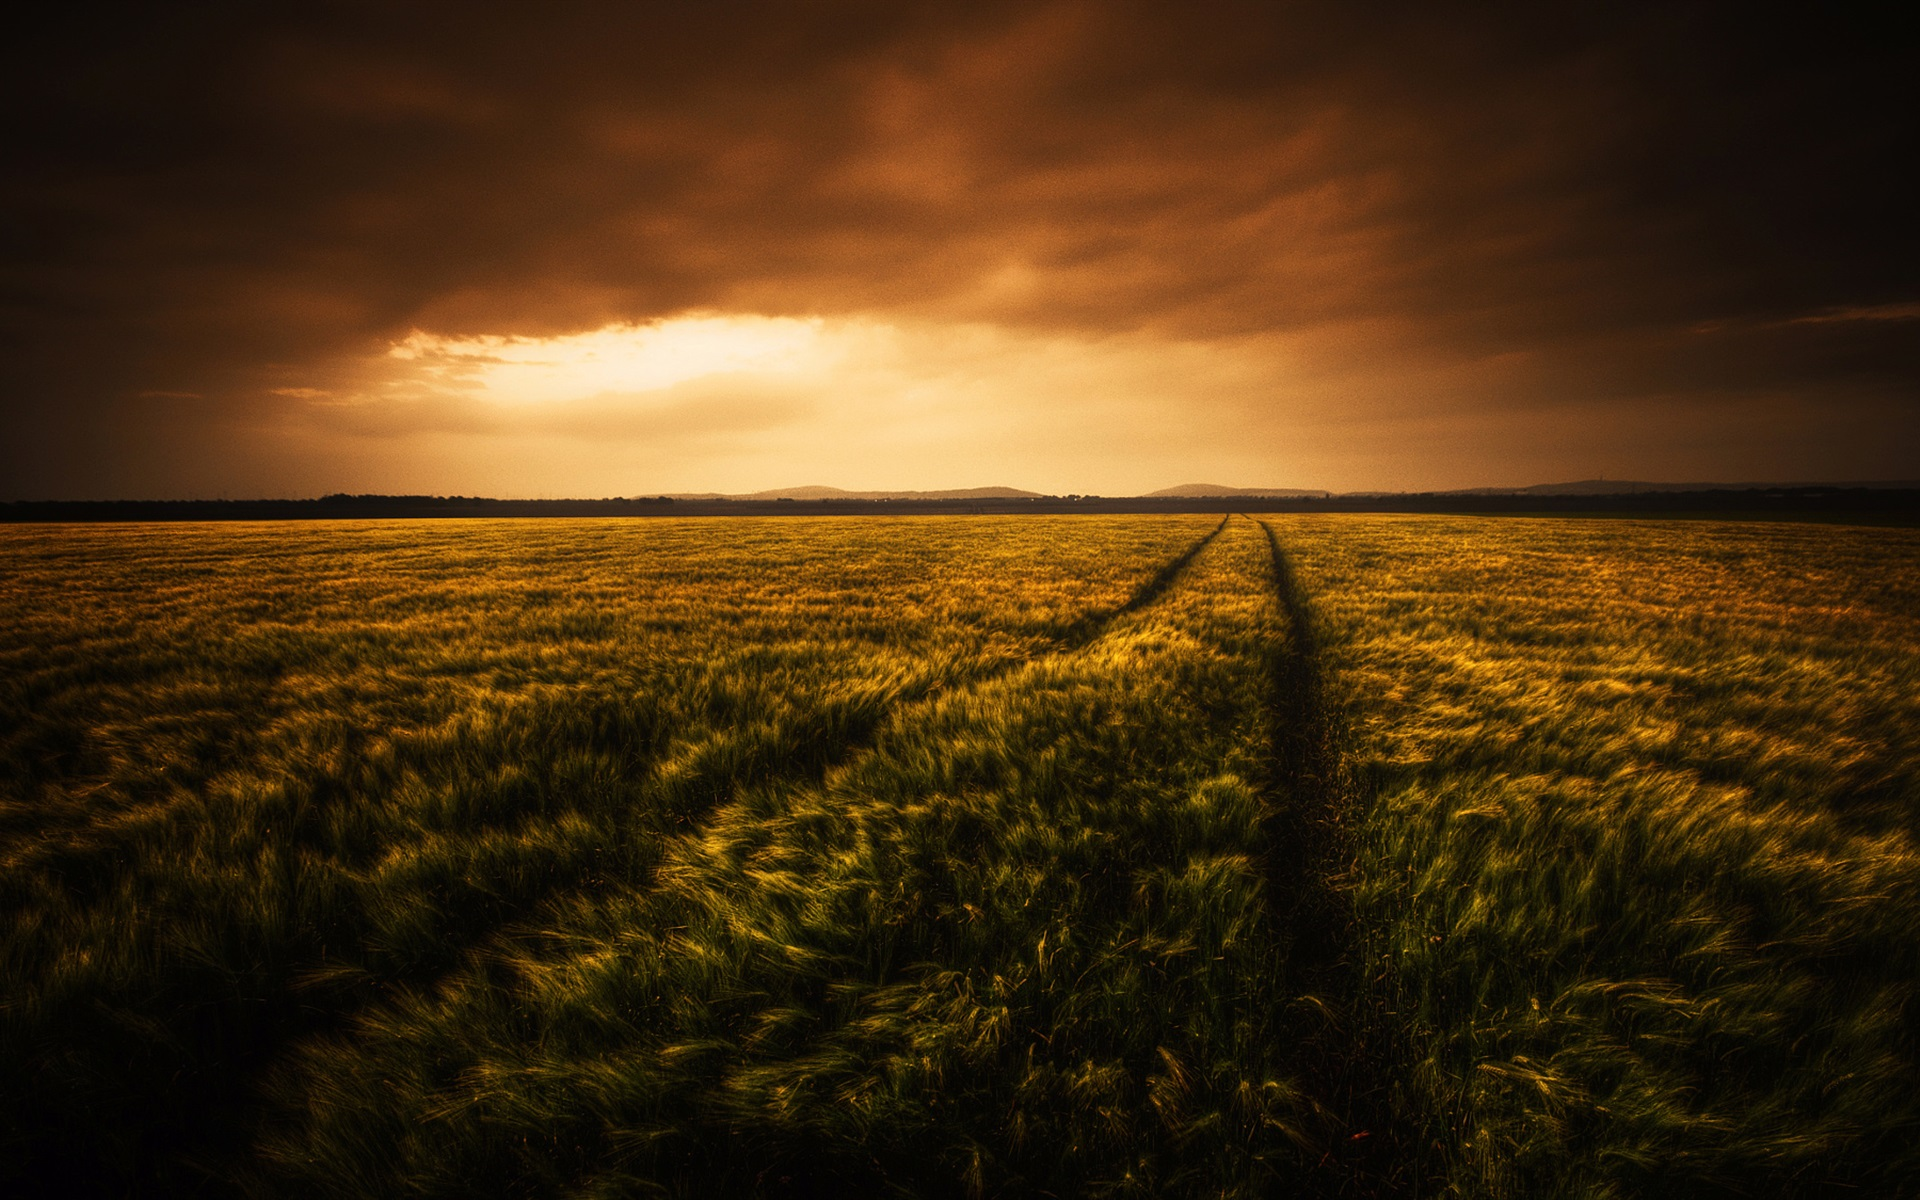 Pubg 4k Wallpapers Download For Pc Beautiful Wheat Fields At Evening Clouds Wallpaper